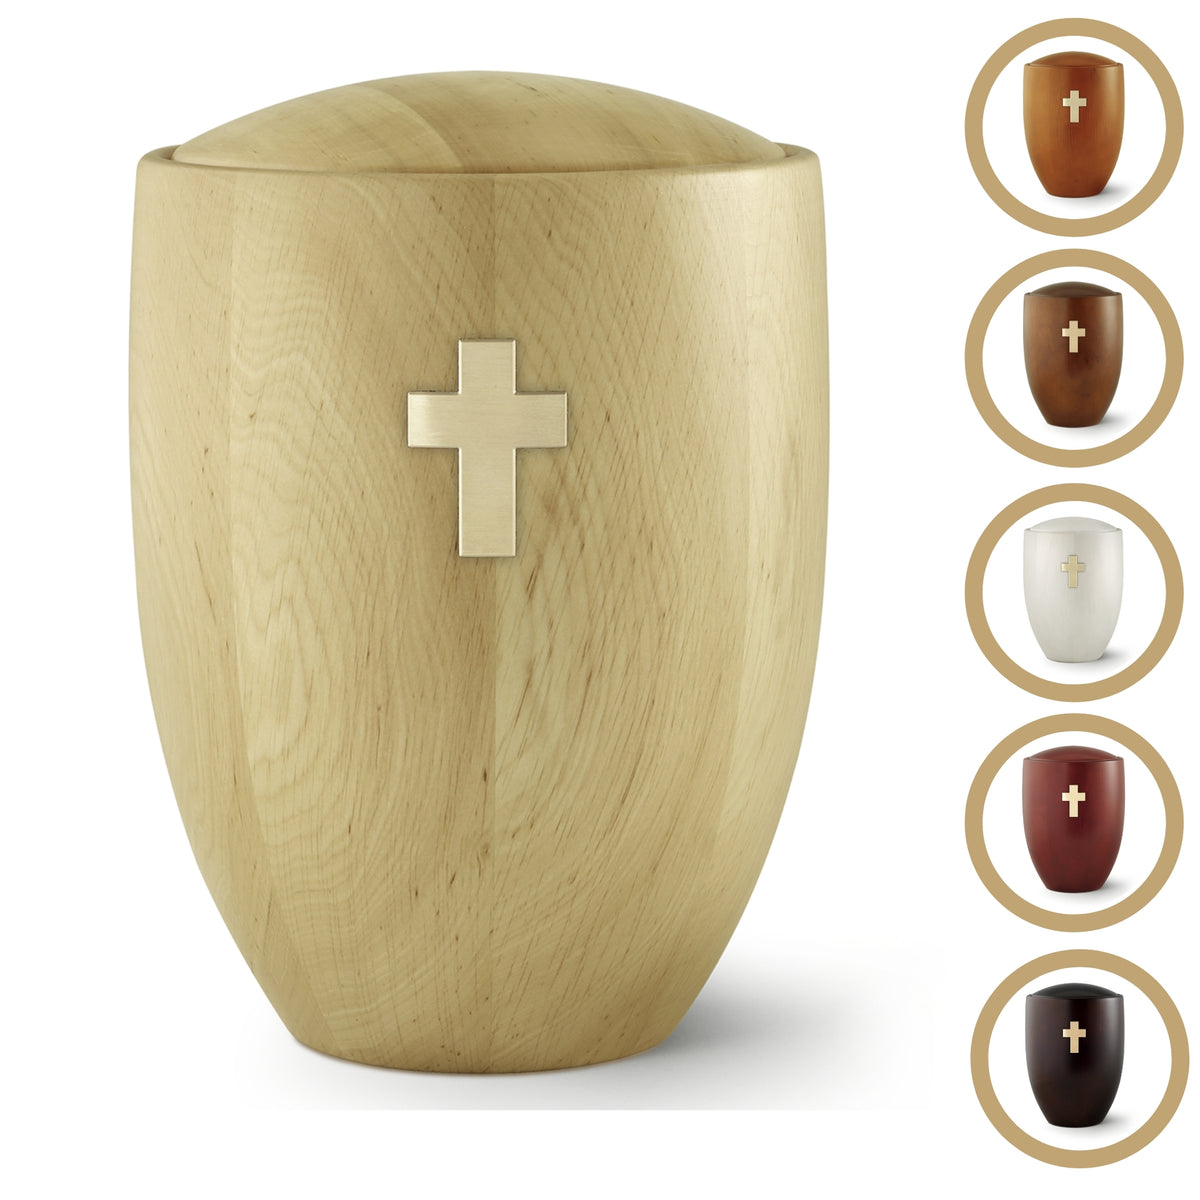 Verwood Cross Solid Wood Cremation Ashes Urn Range